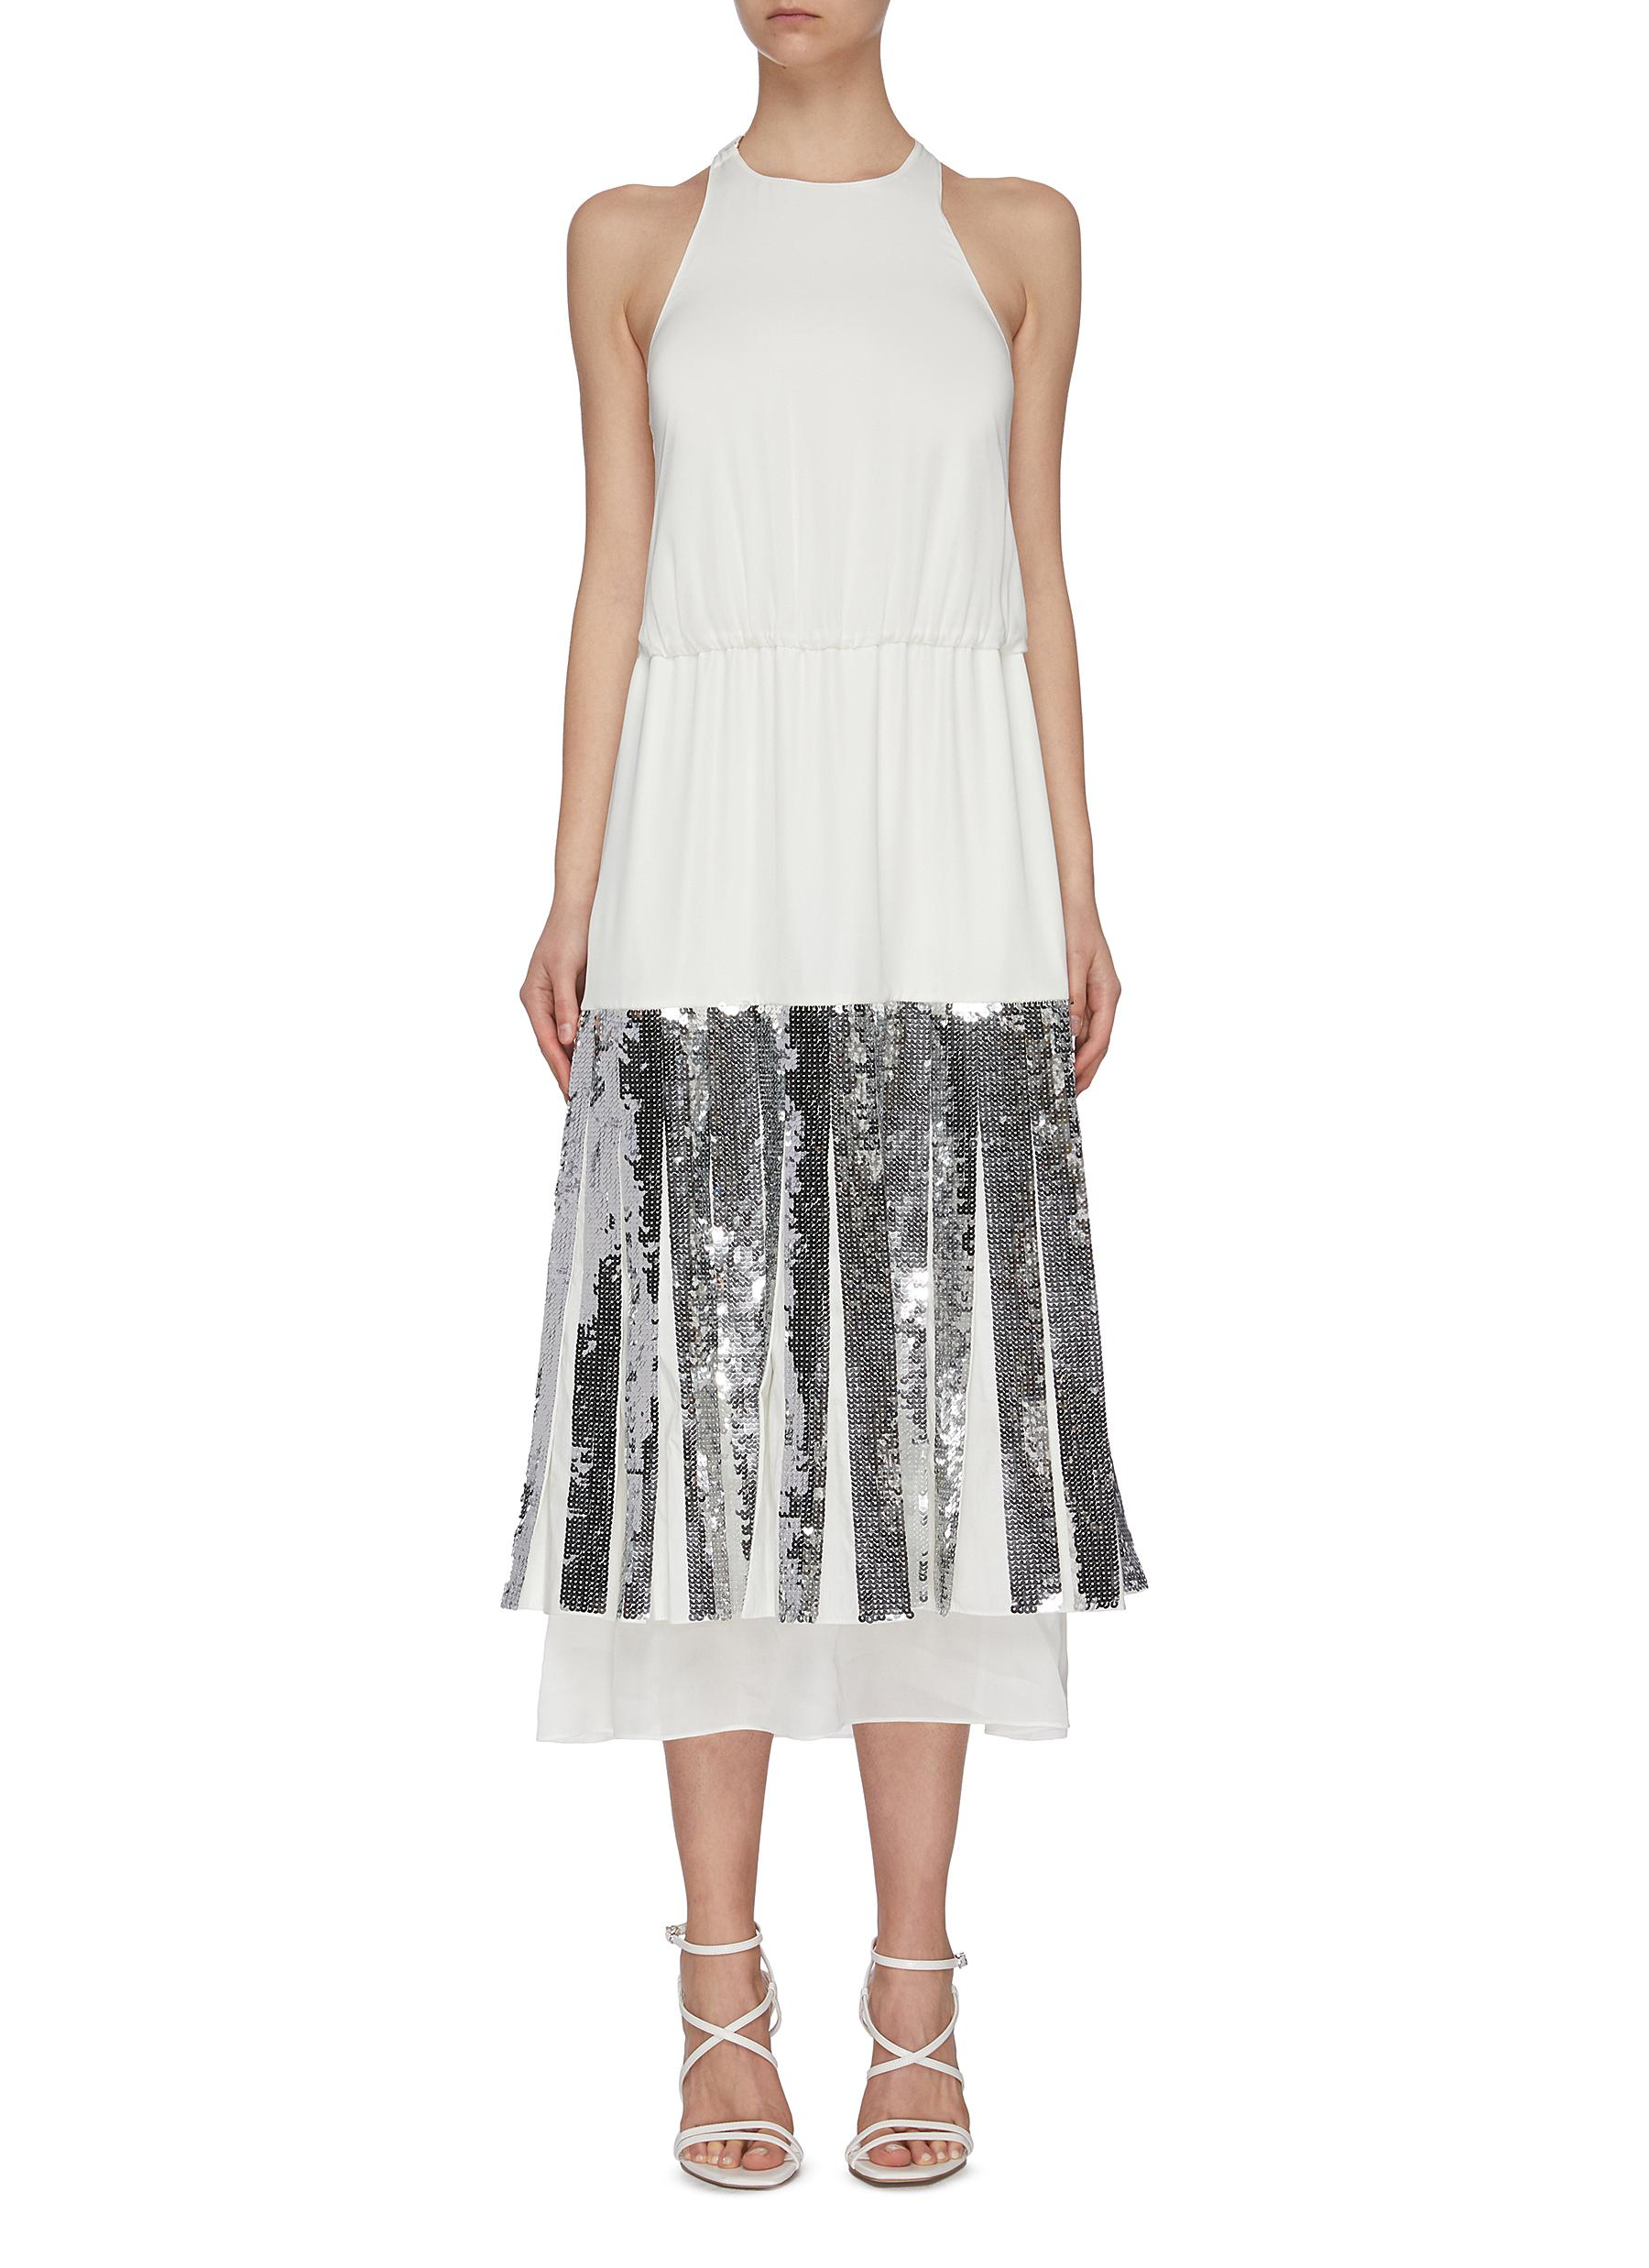 Buy Tibi Dresses 'Claude' sequin layered halter dress